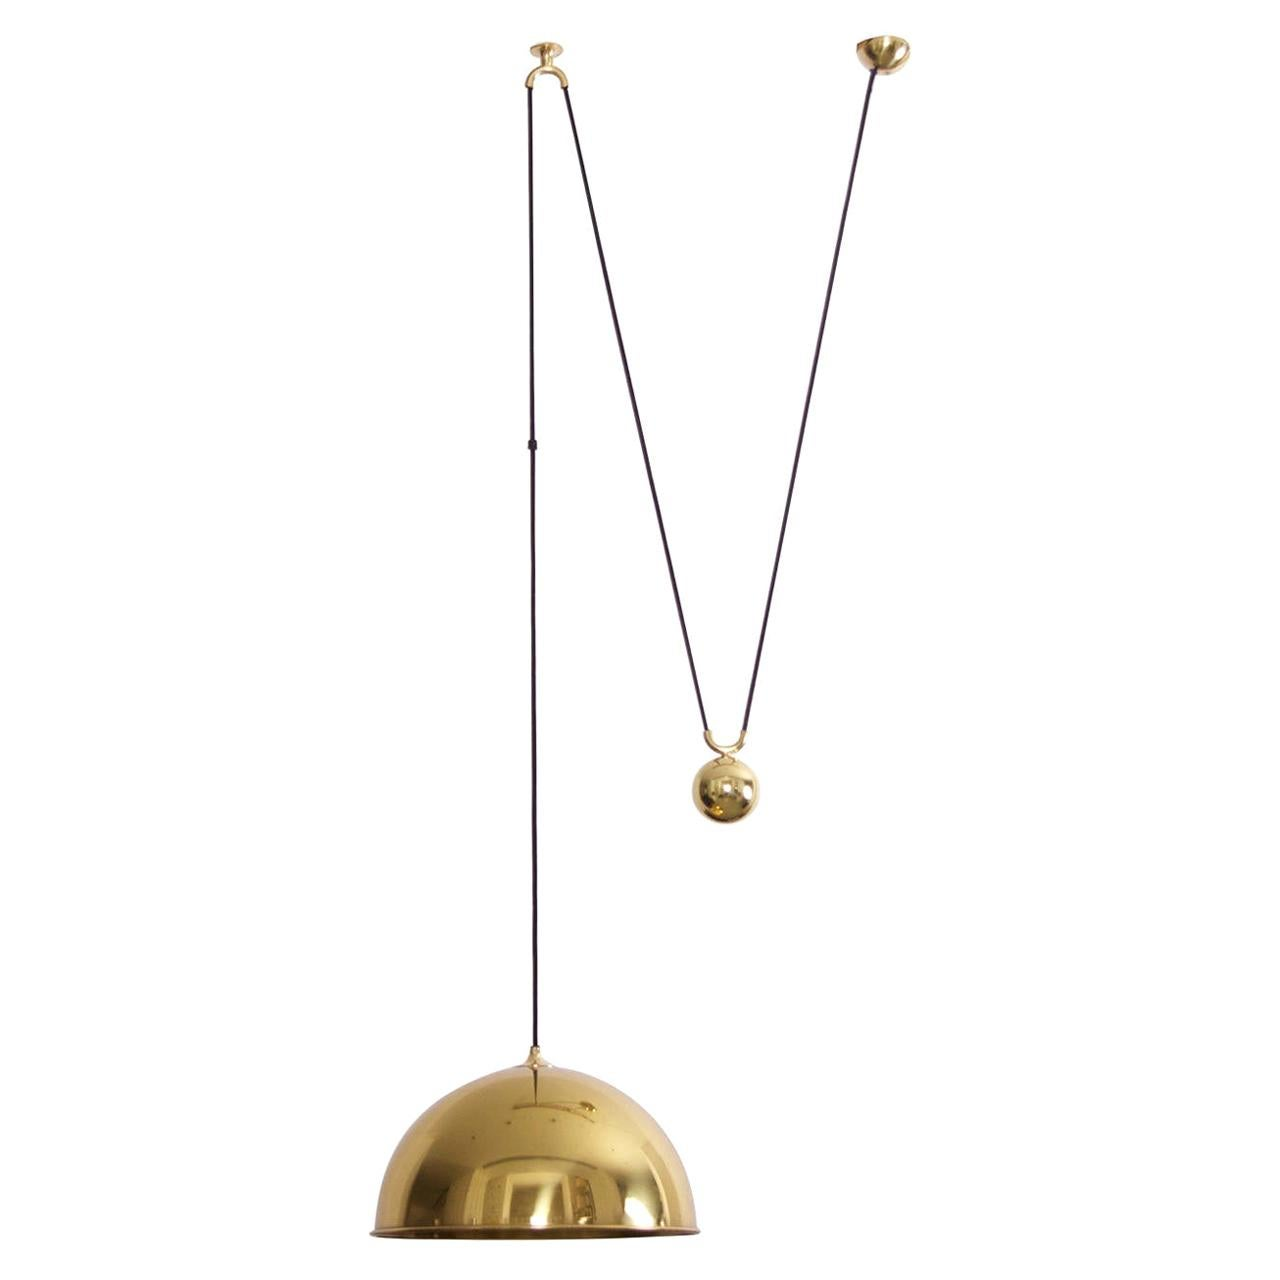 Florian Schulz Posa Pendant with Counterweight in Brass